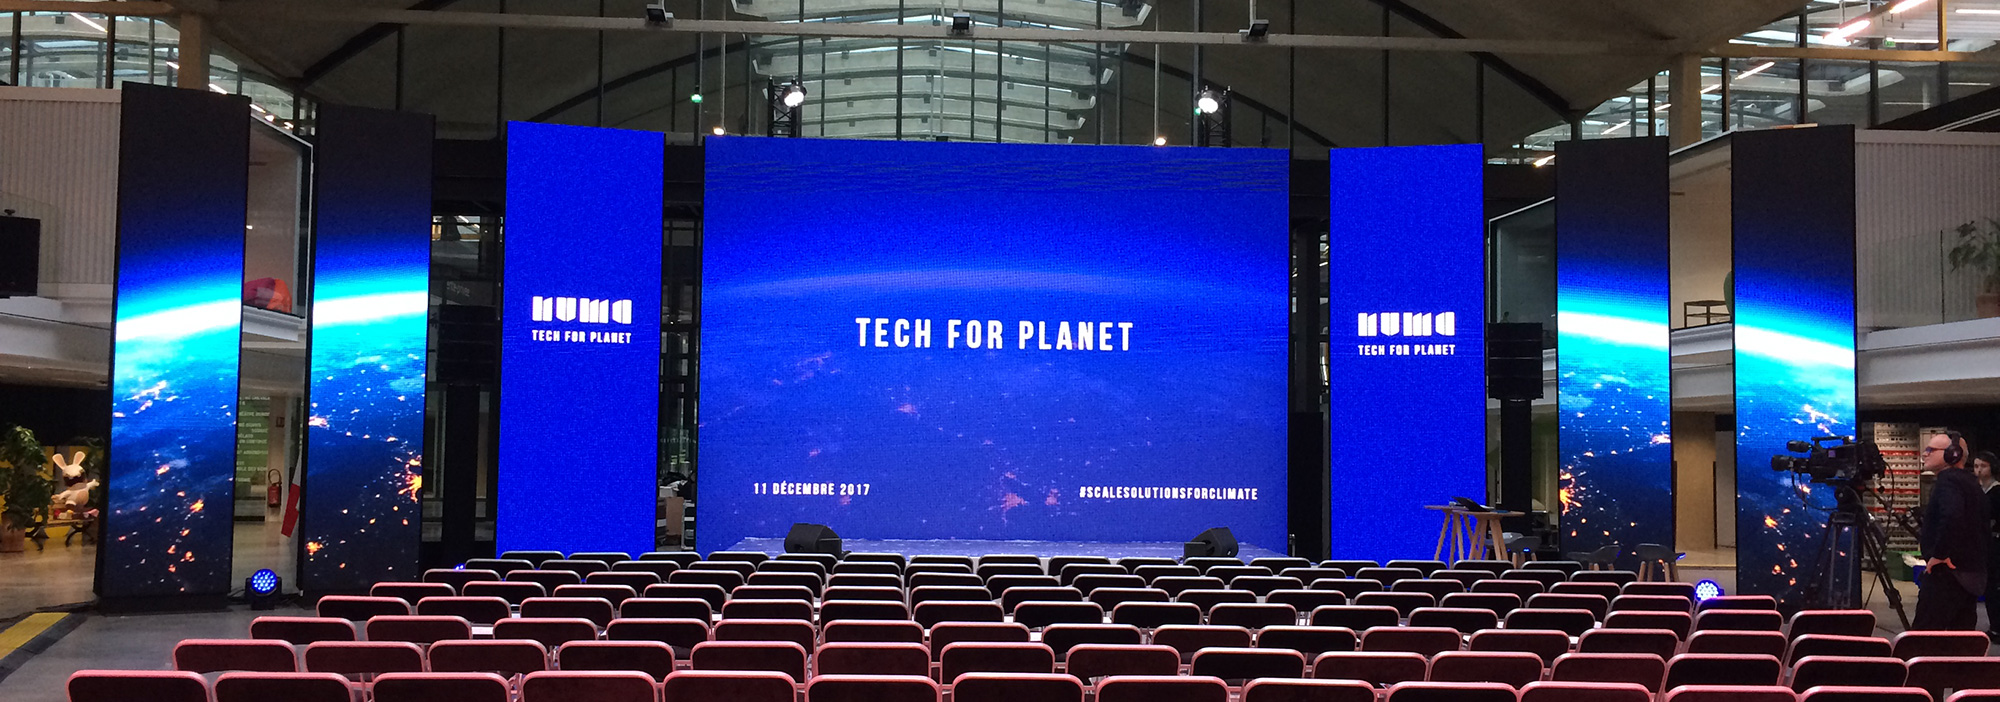 artcomvideo-tech-for-planet-6